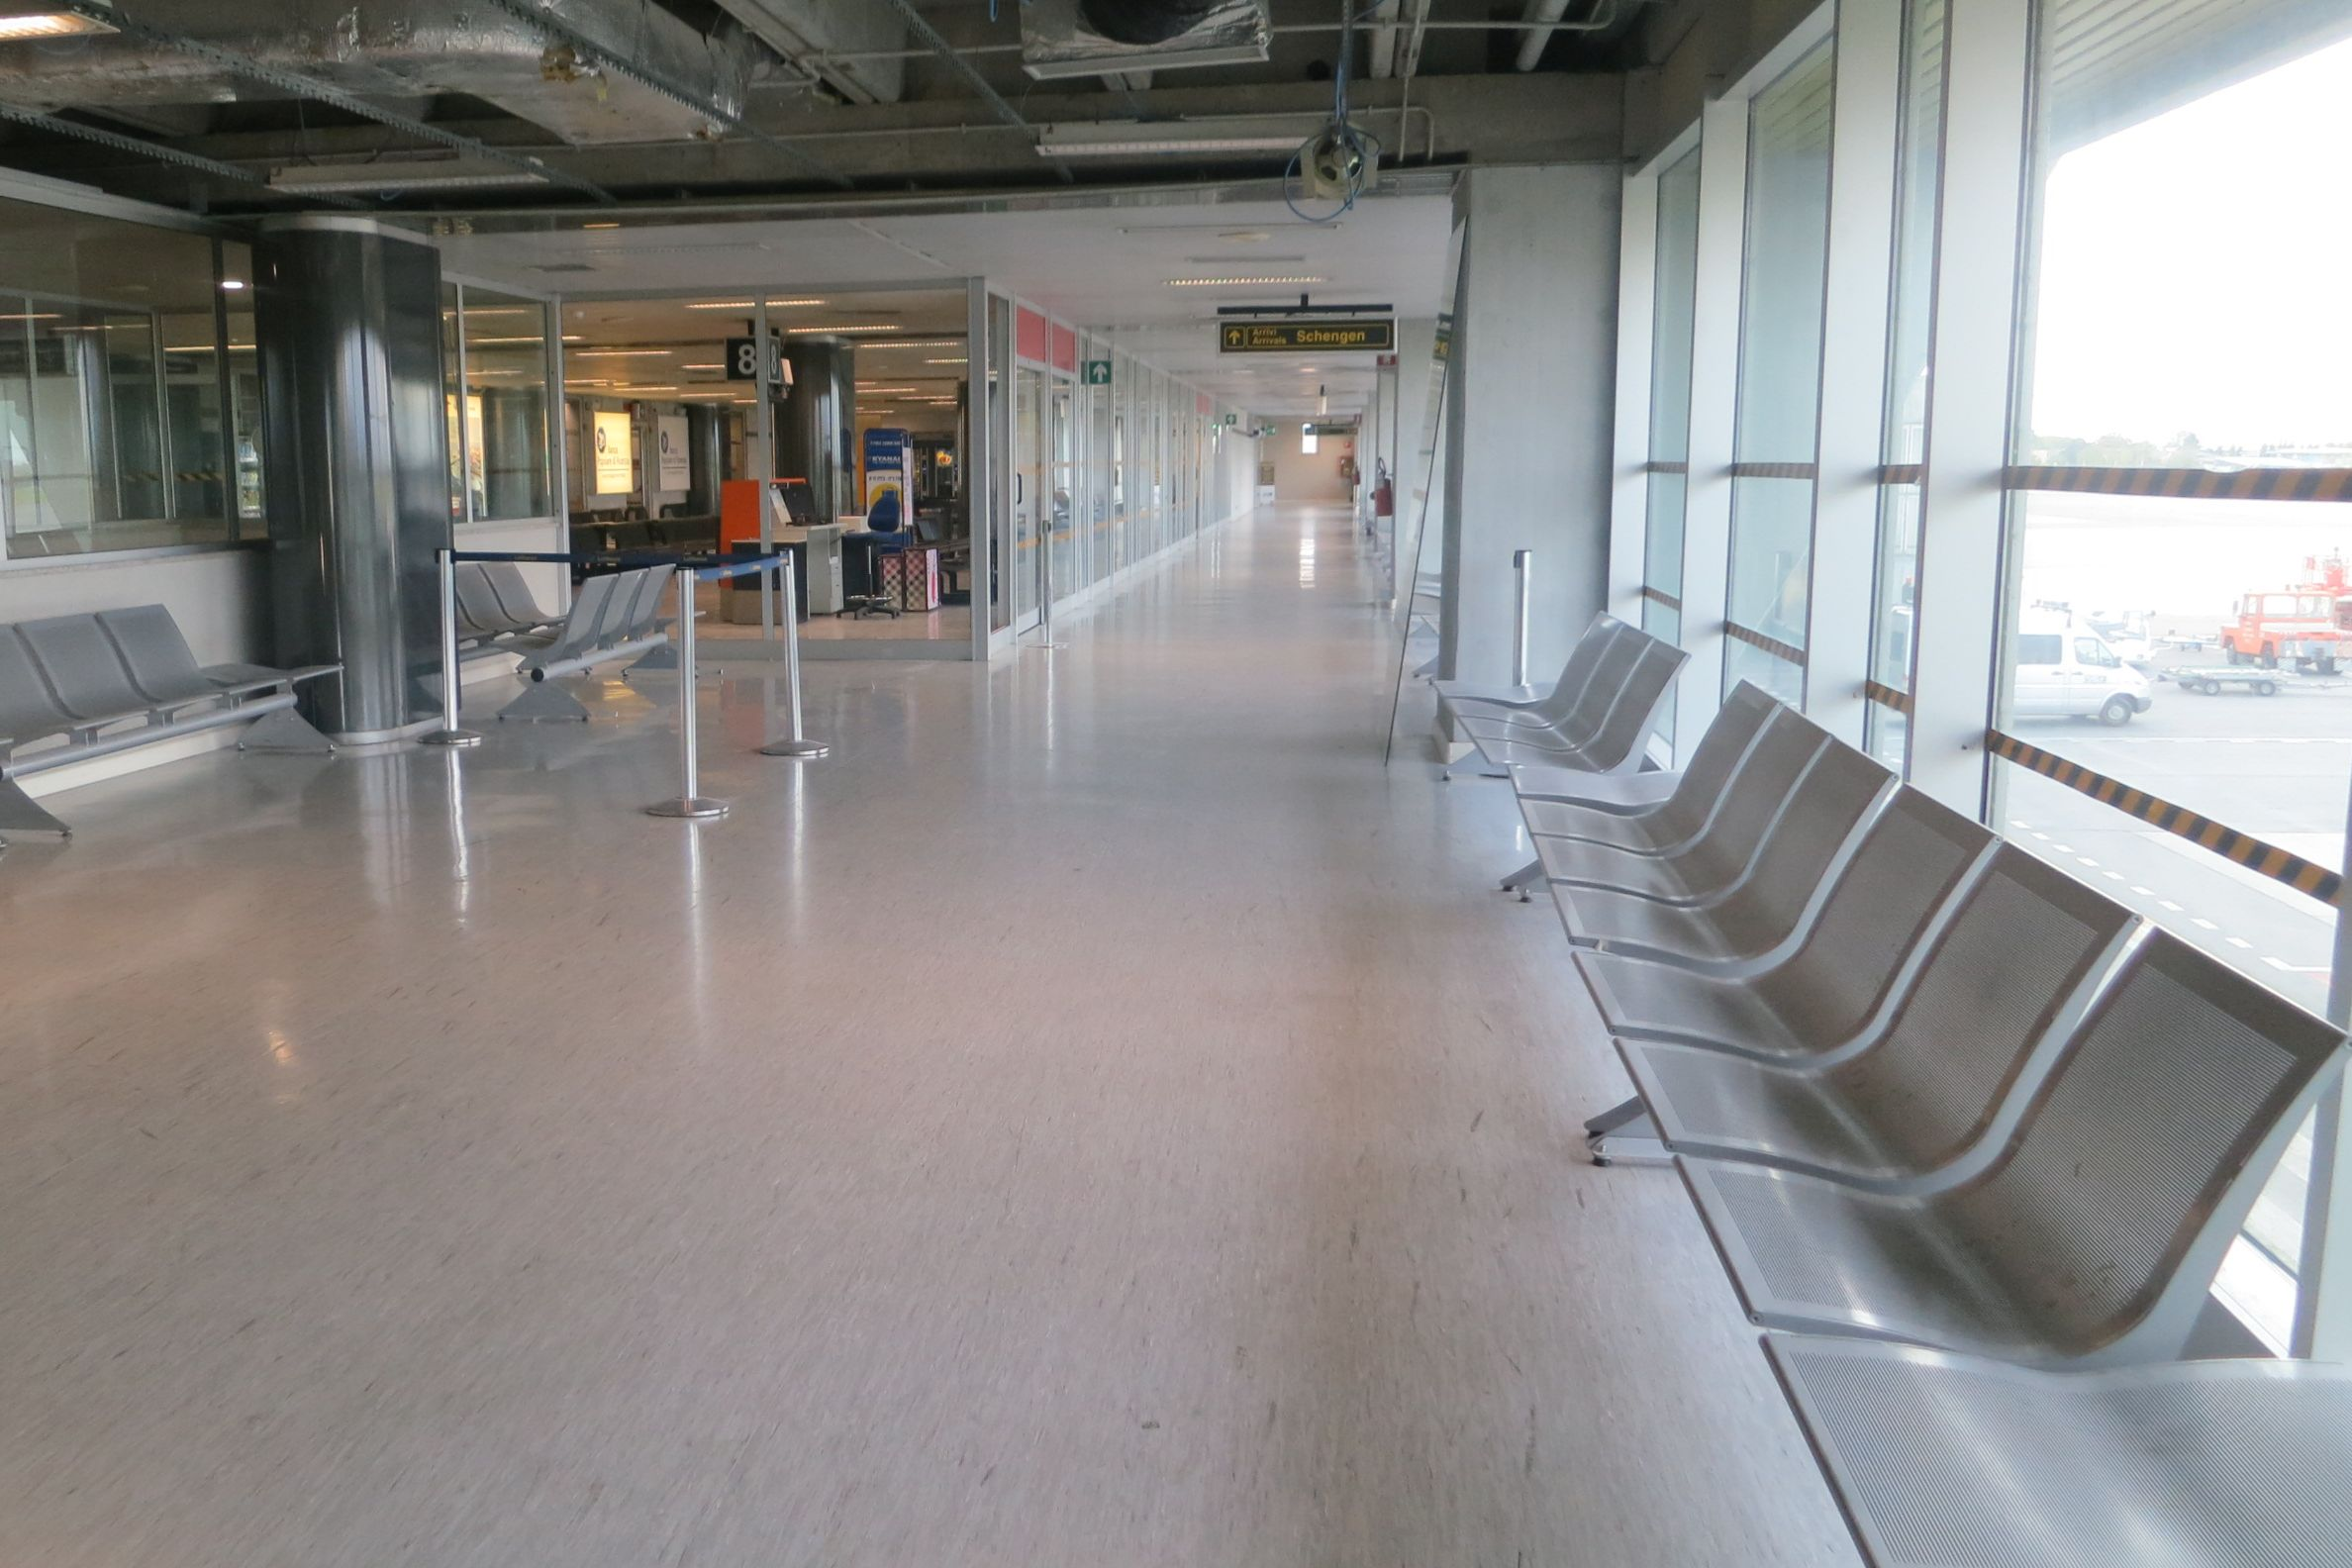 Trieste Airport Waiting Area